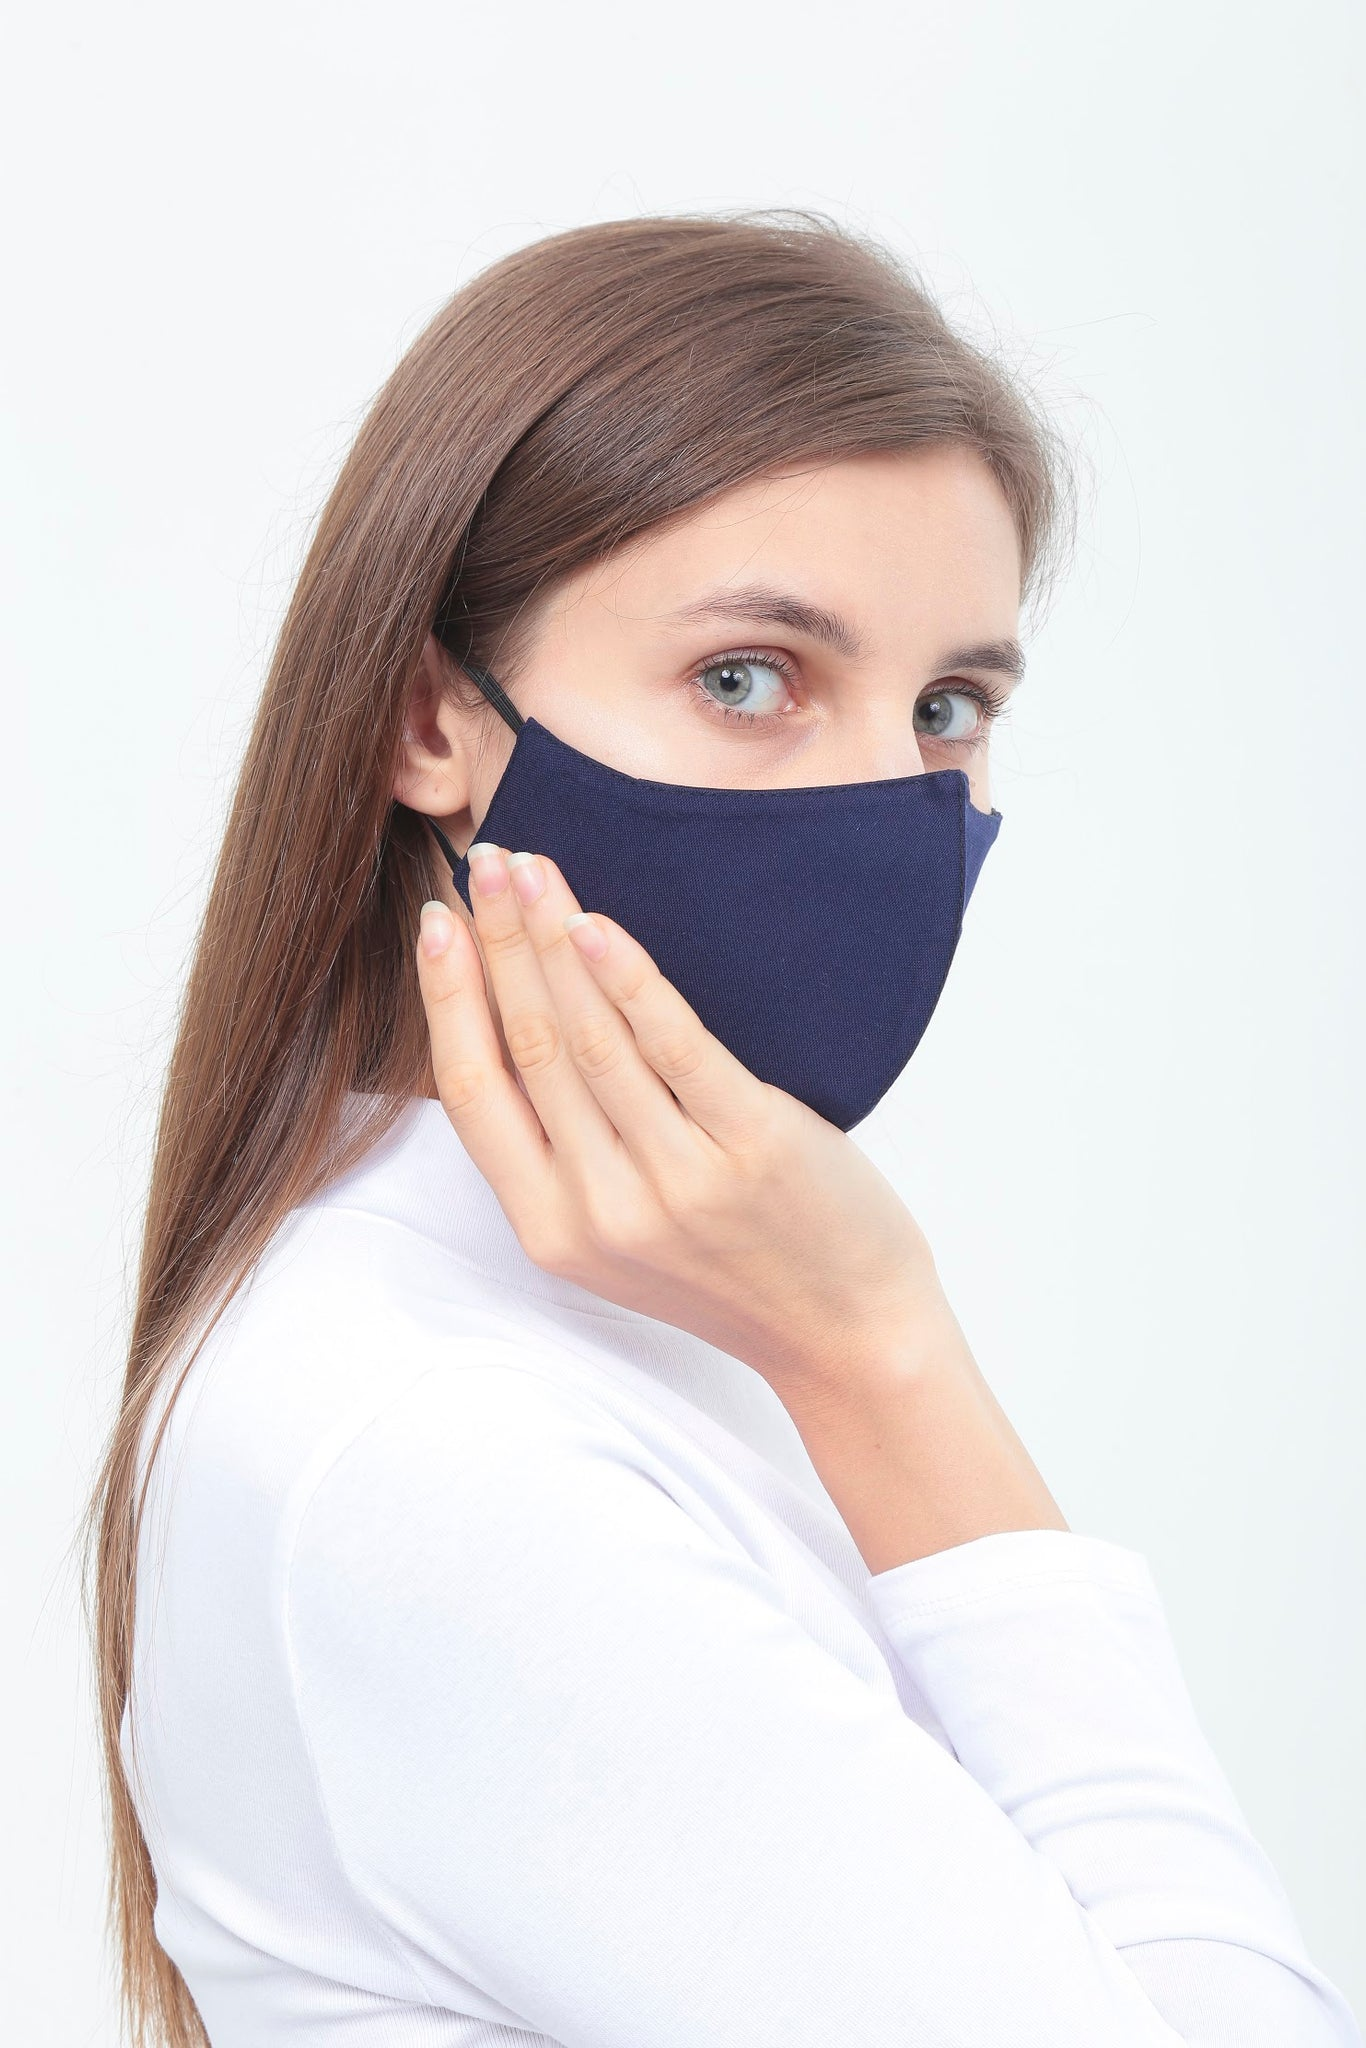 3BULBS Reusable Face Mask in Navy Blue (Single/3 Filters)